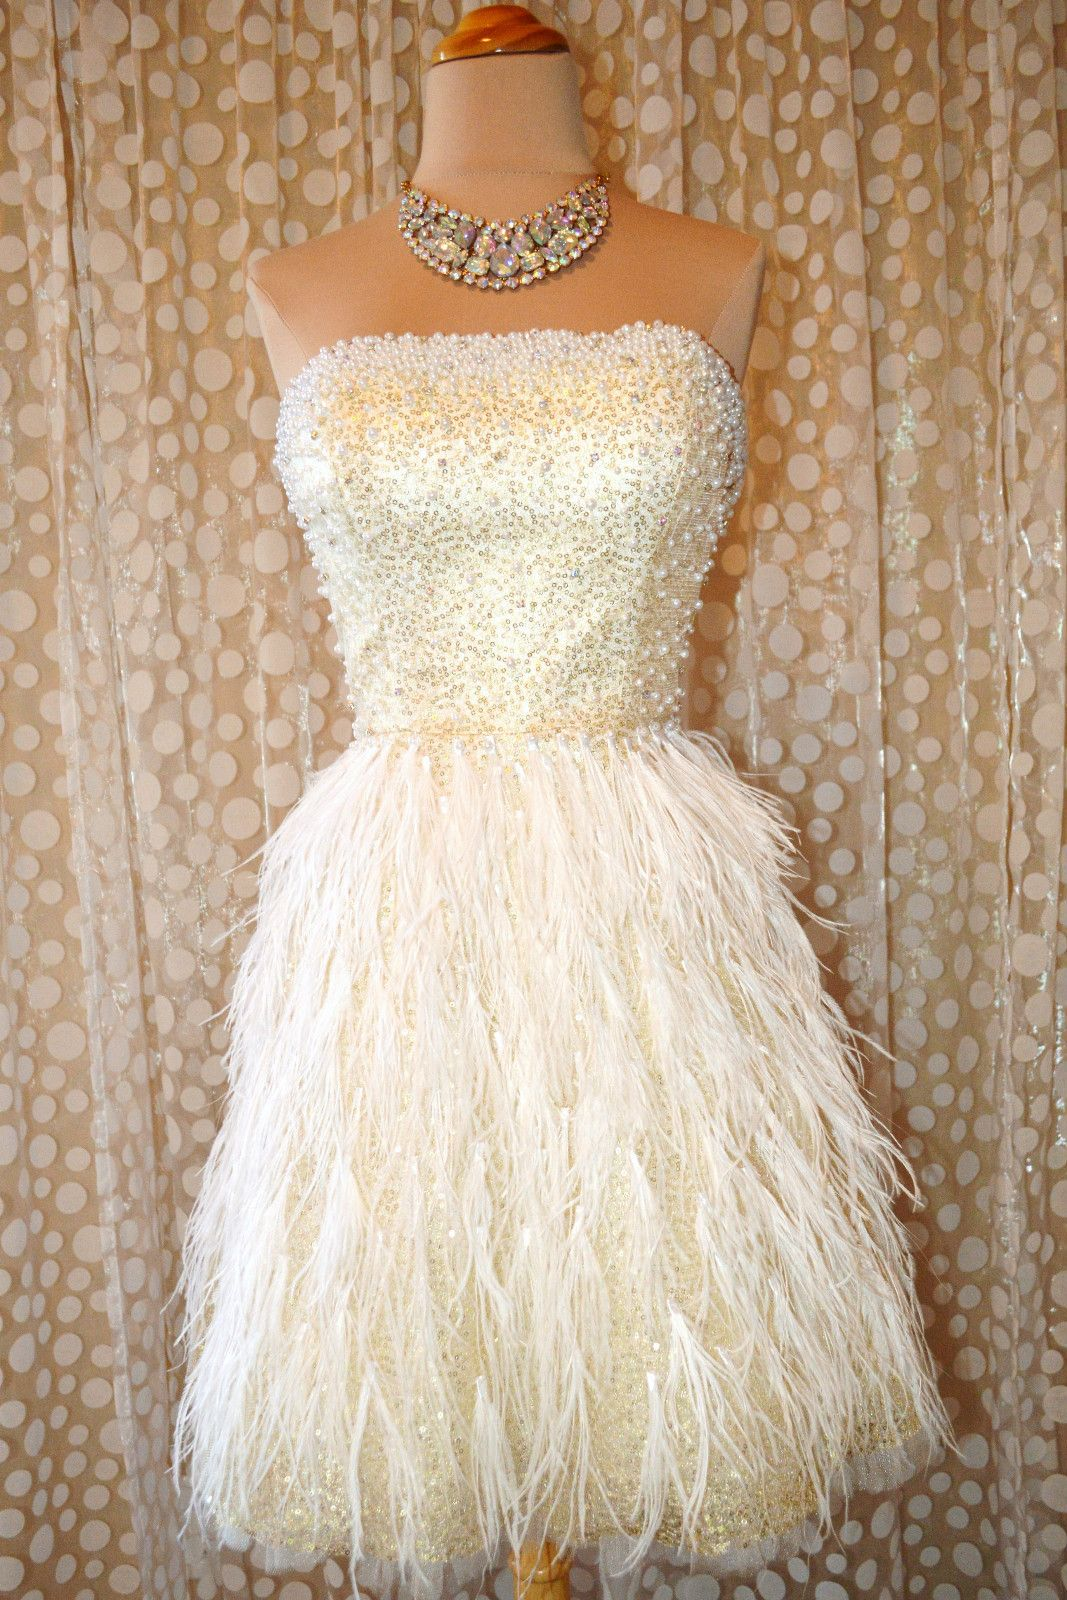 Jovani Short Feather Homecoming Evening Pageant Prom Formal Bridal Gown Dress 12 White Cocktail Dress Shop Cocktail Dresses Cocktail Dresses Online